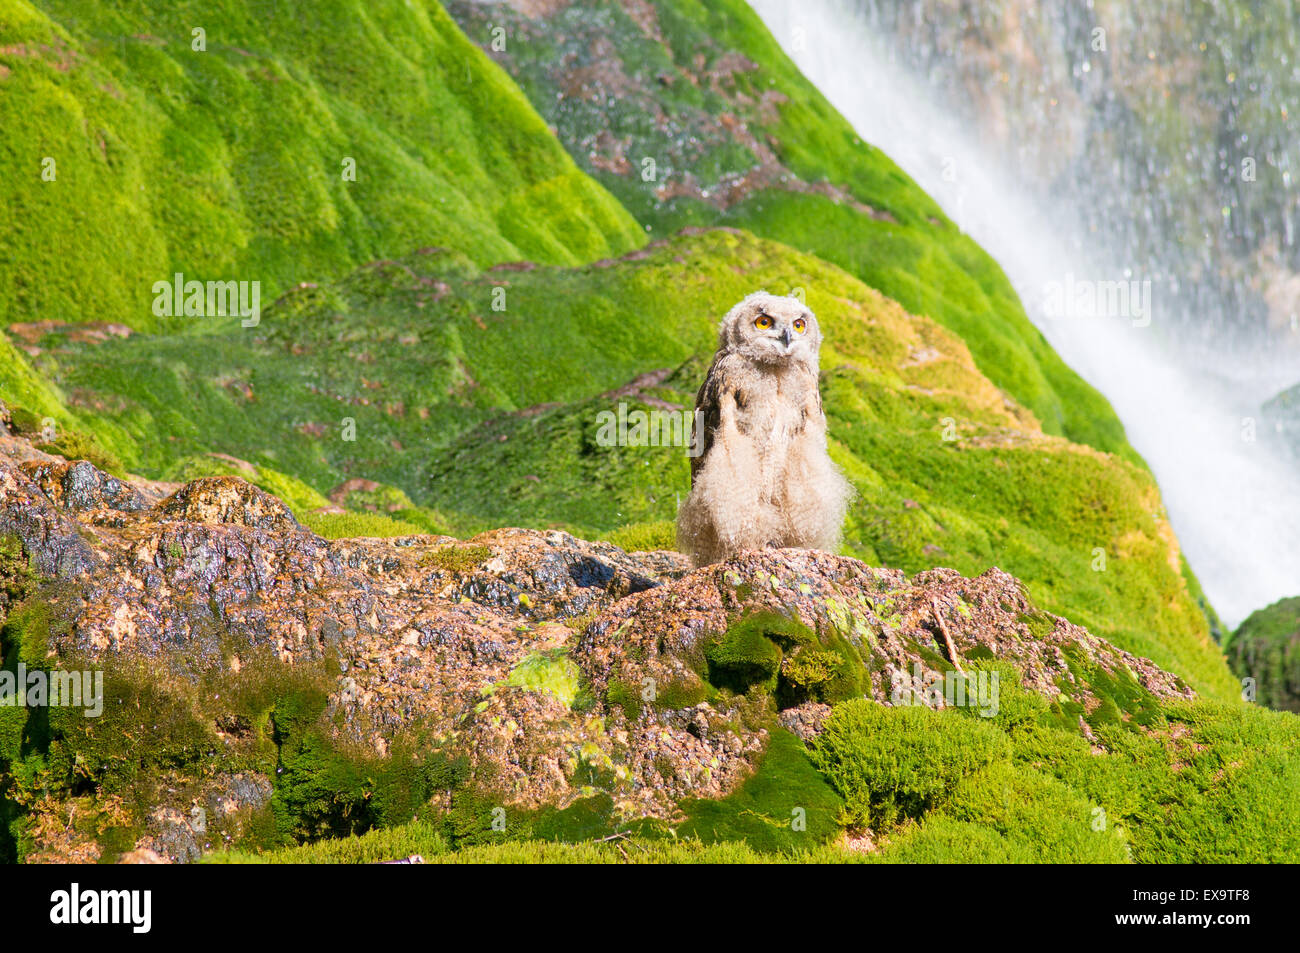 a-young-eurasian-eagle-owl-at-the-waterf